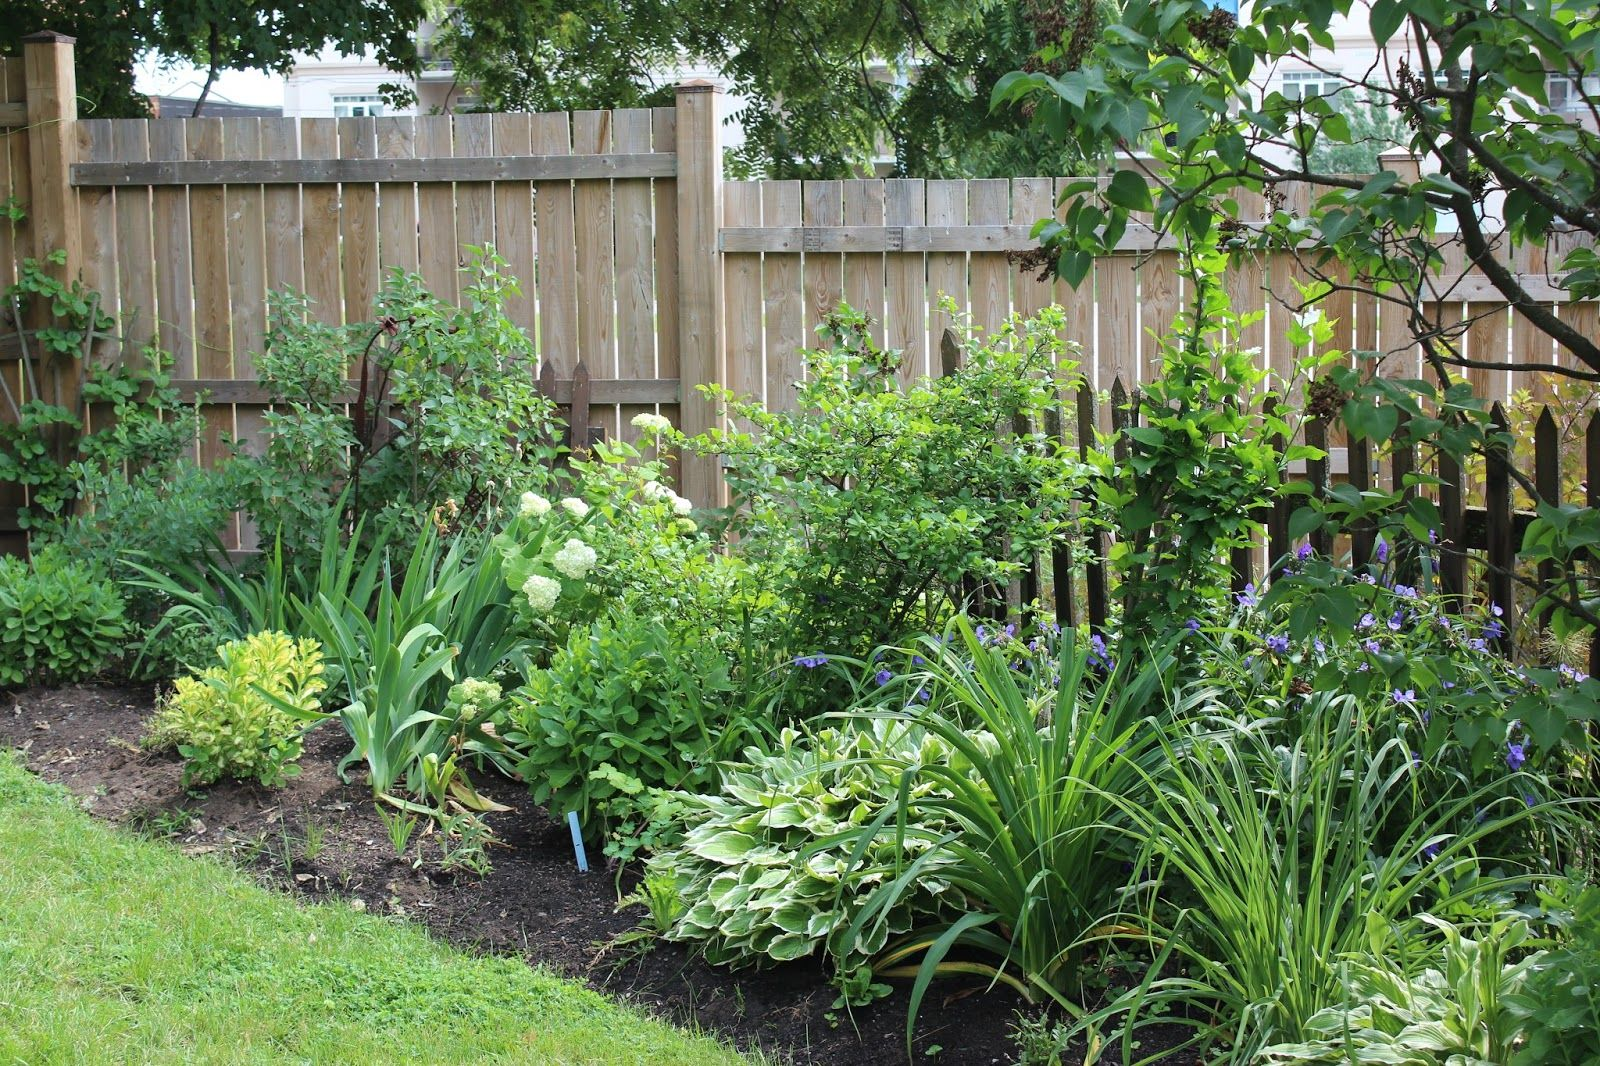 Border Shrubs Along Fence Google Search Small Garden Fence